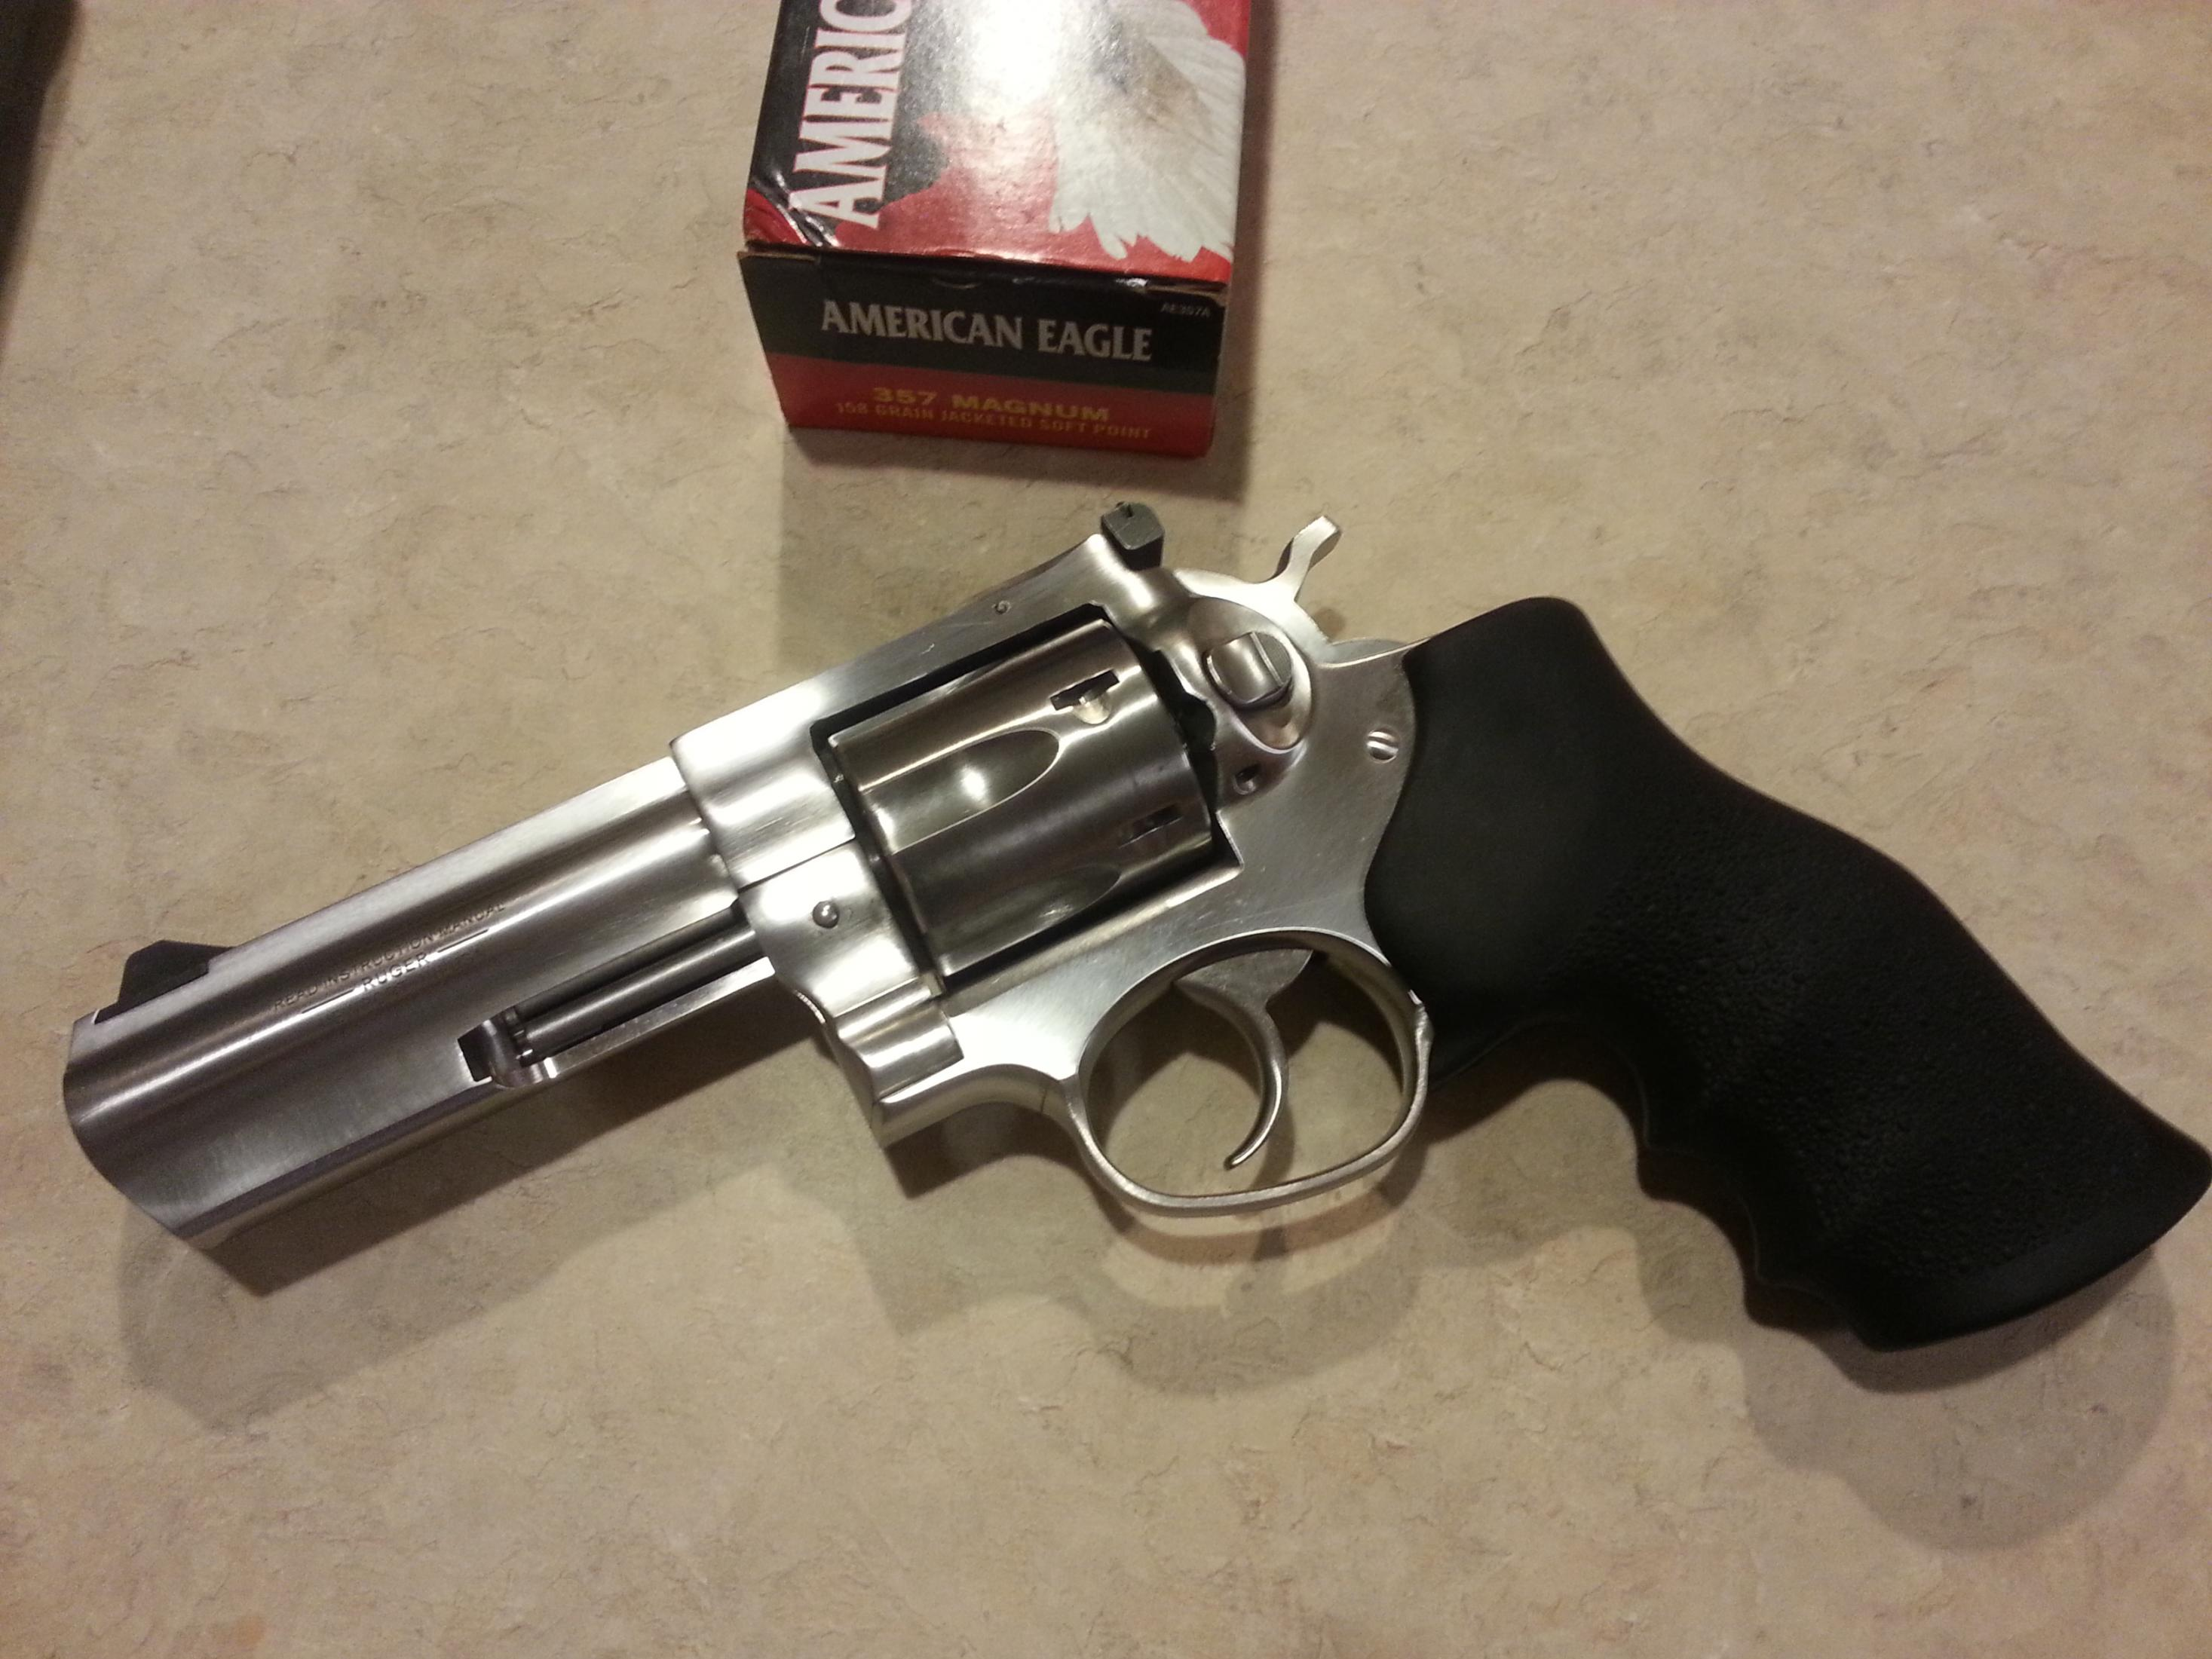 Smith & Wesson Revolvers, Old or New?-152.jpg